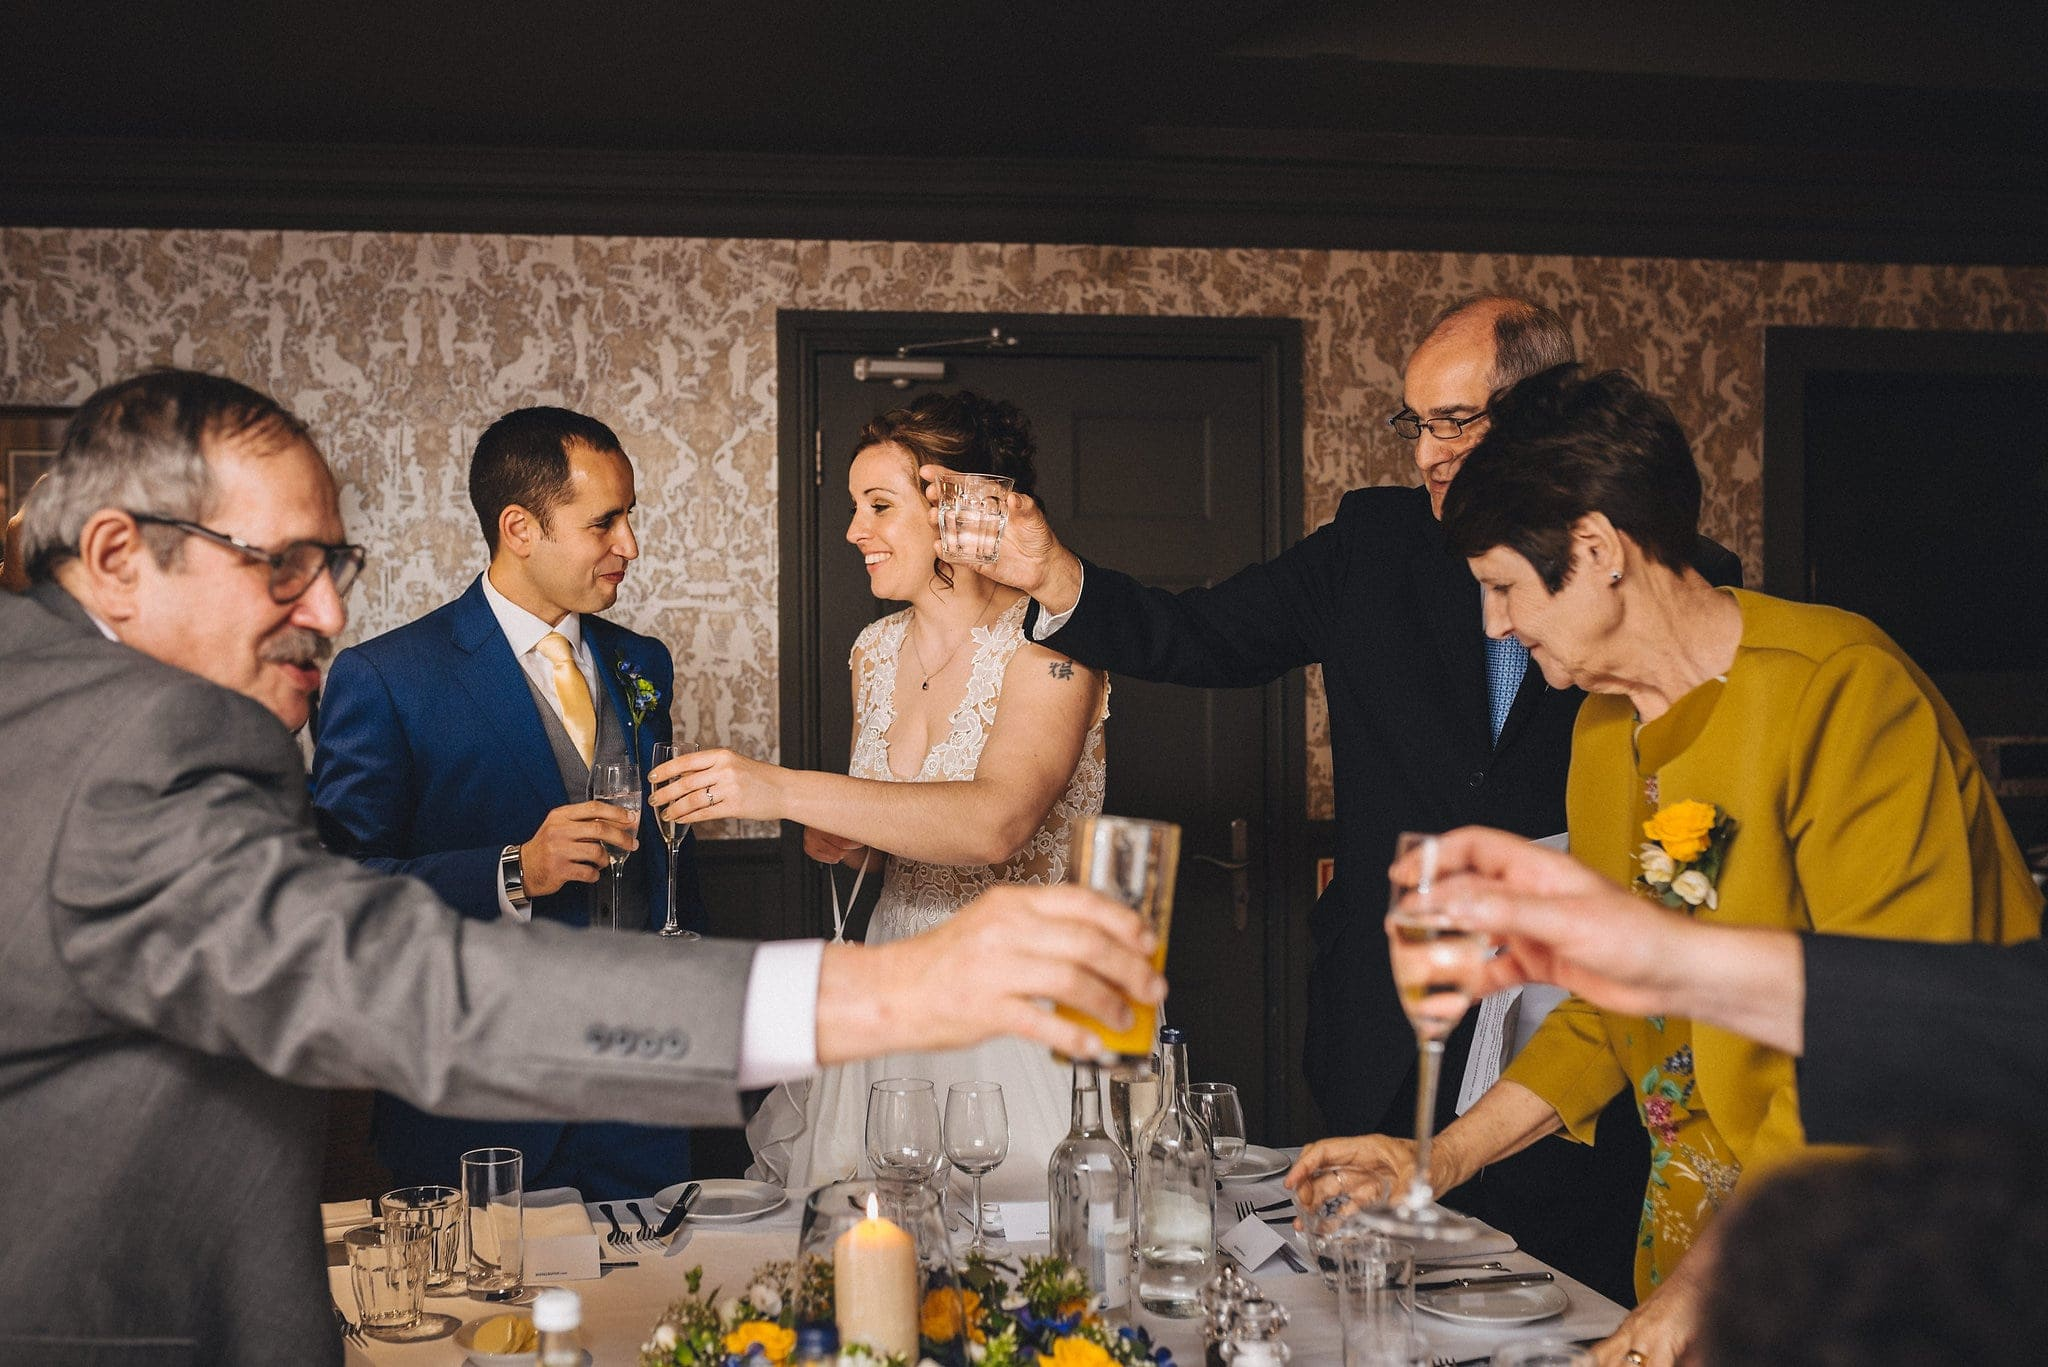 Guests toast bride and groom at wedding reception in Brighton